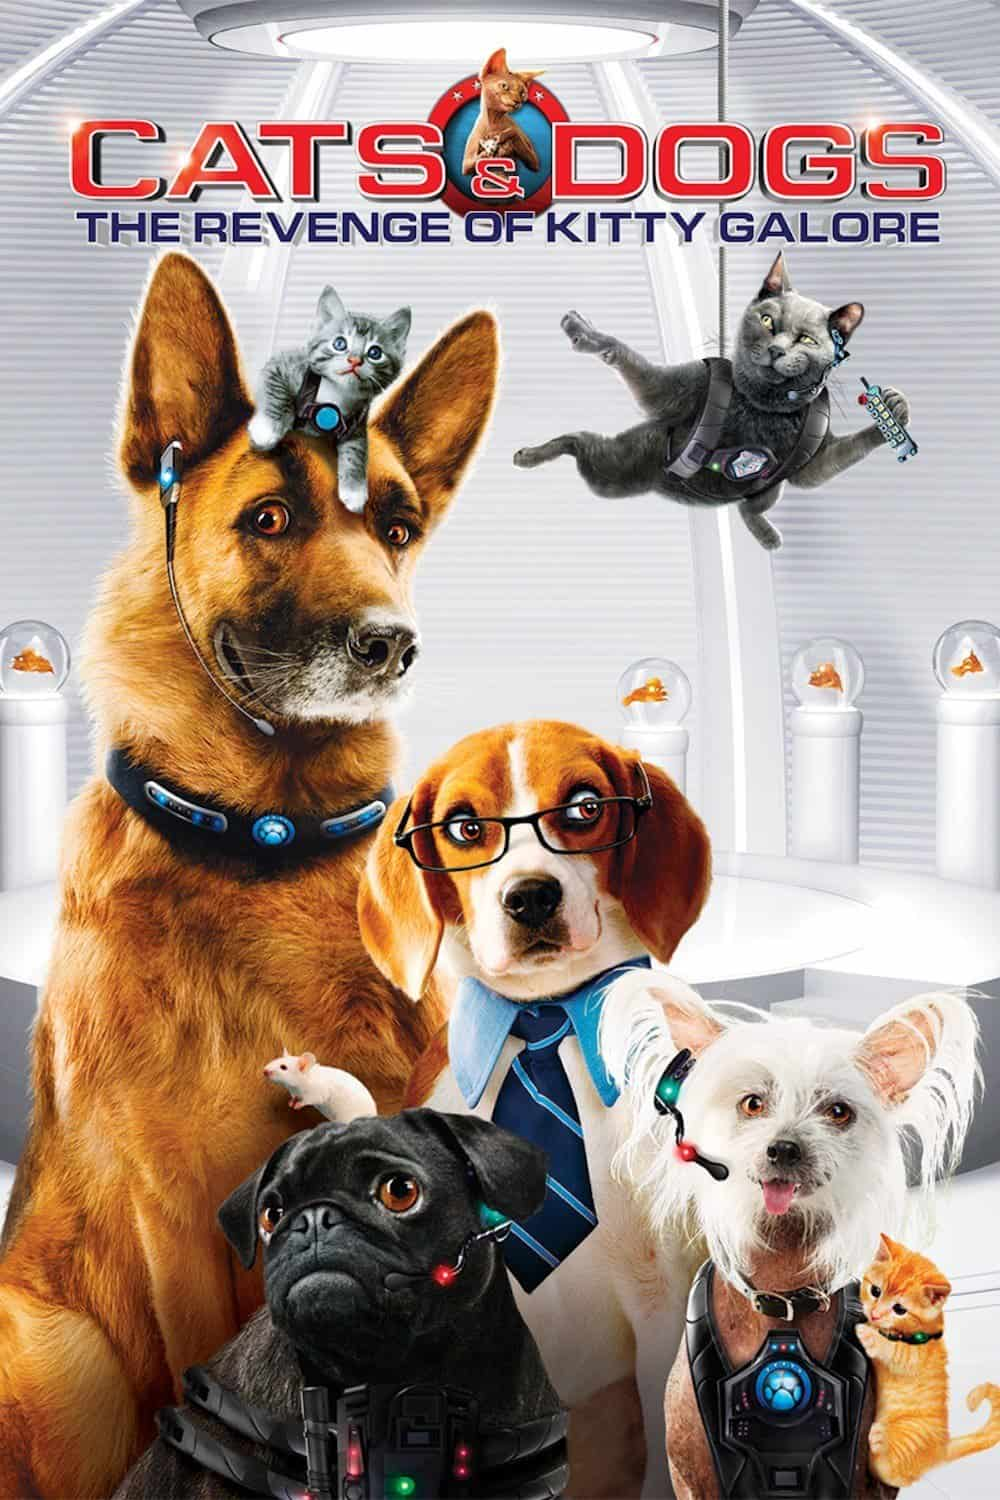 Cats and Dogs: The Revenge of Kitty Galore, 2010